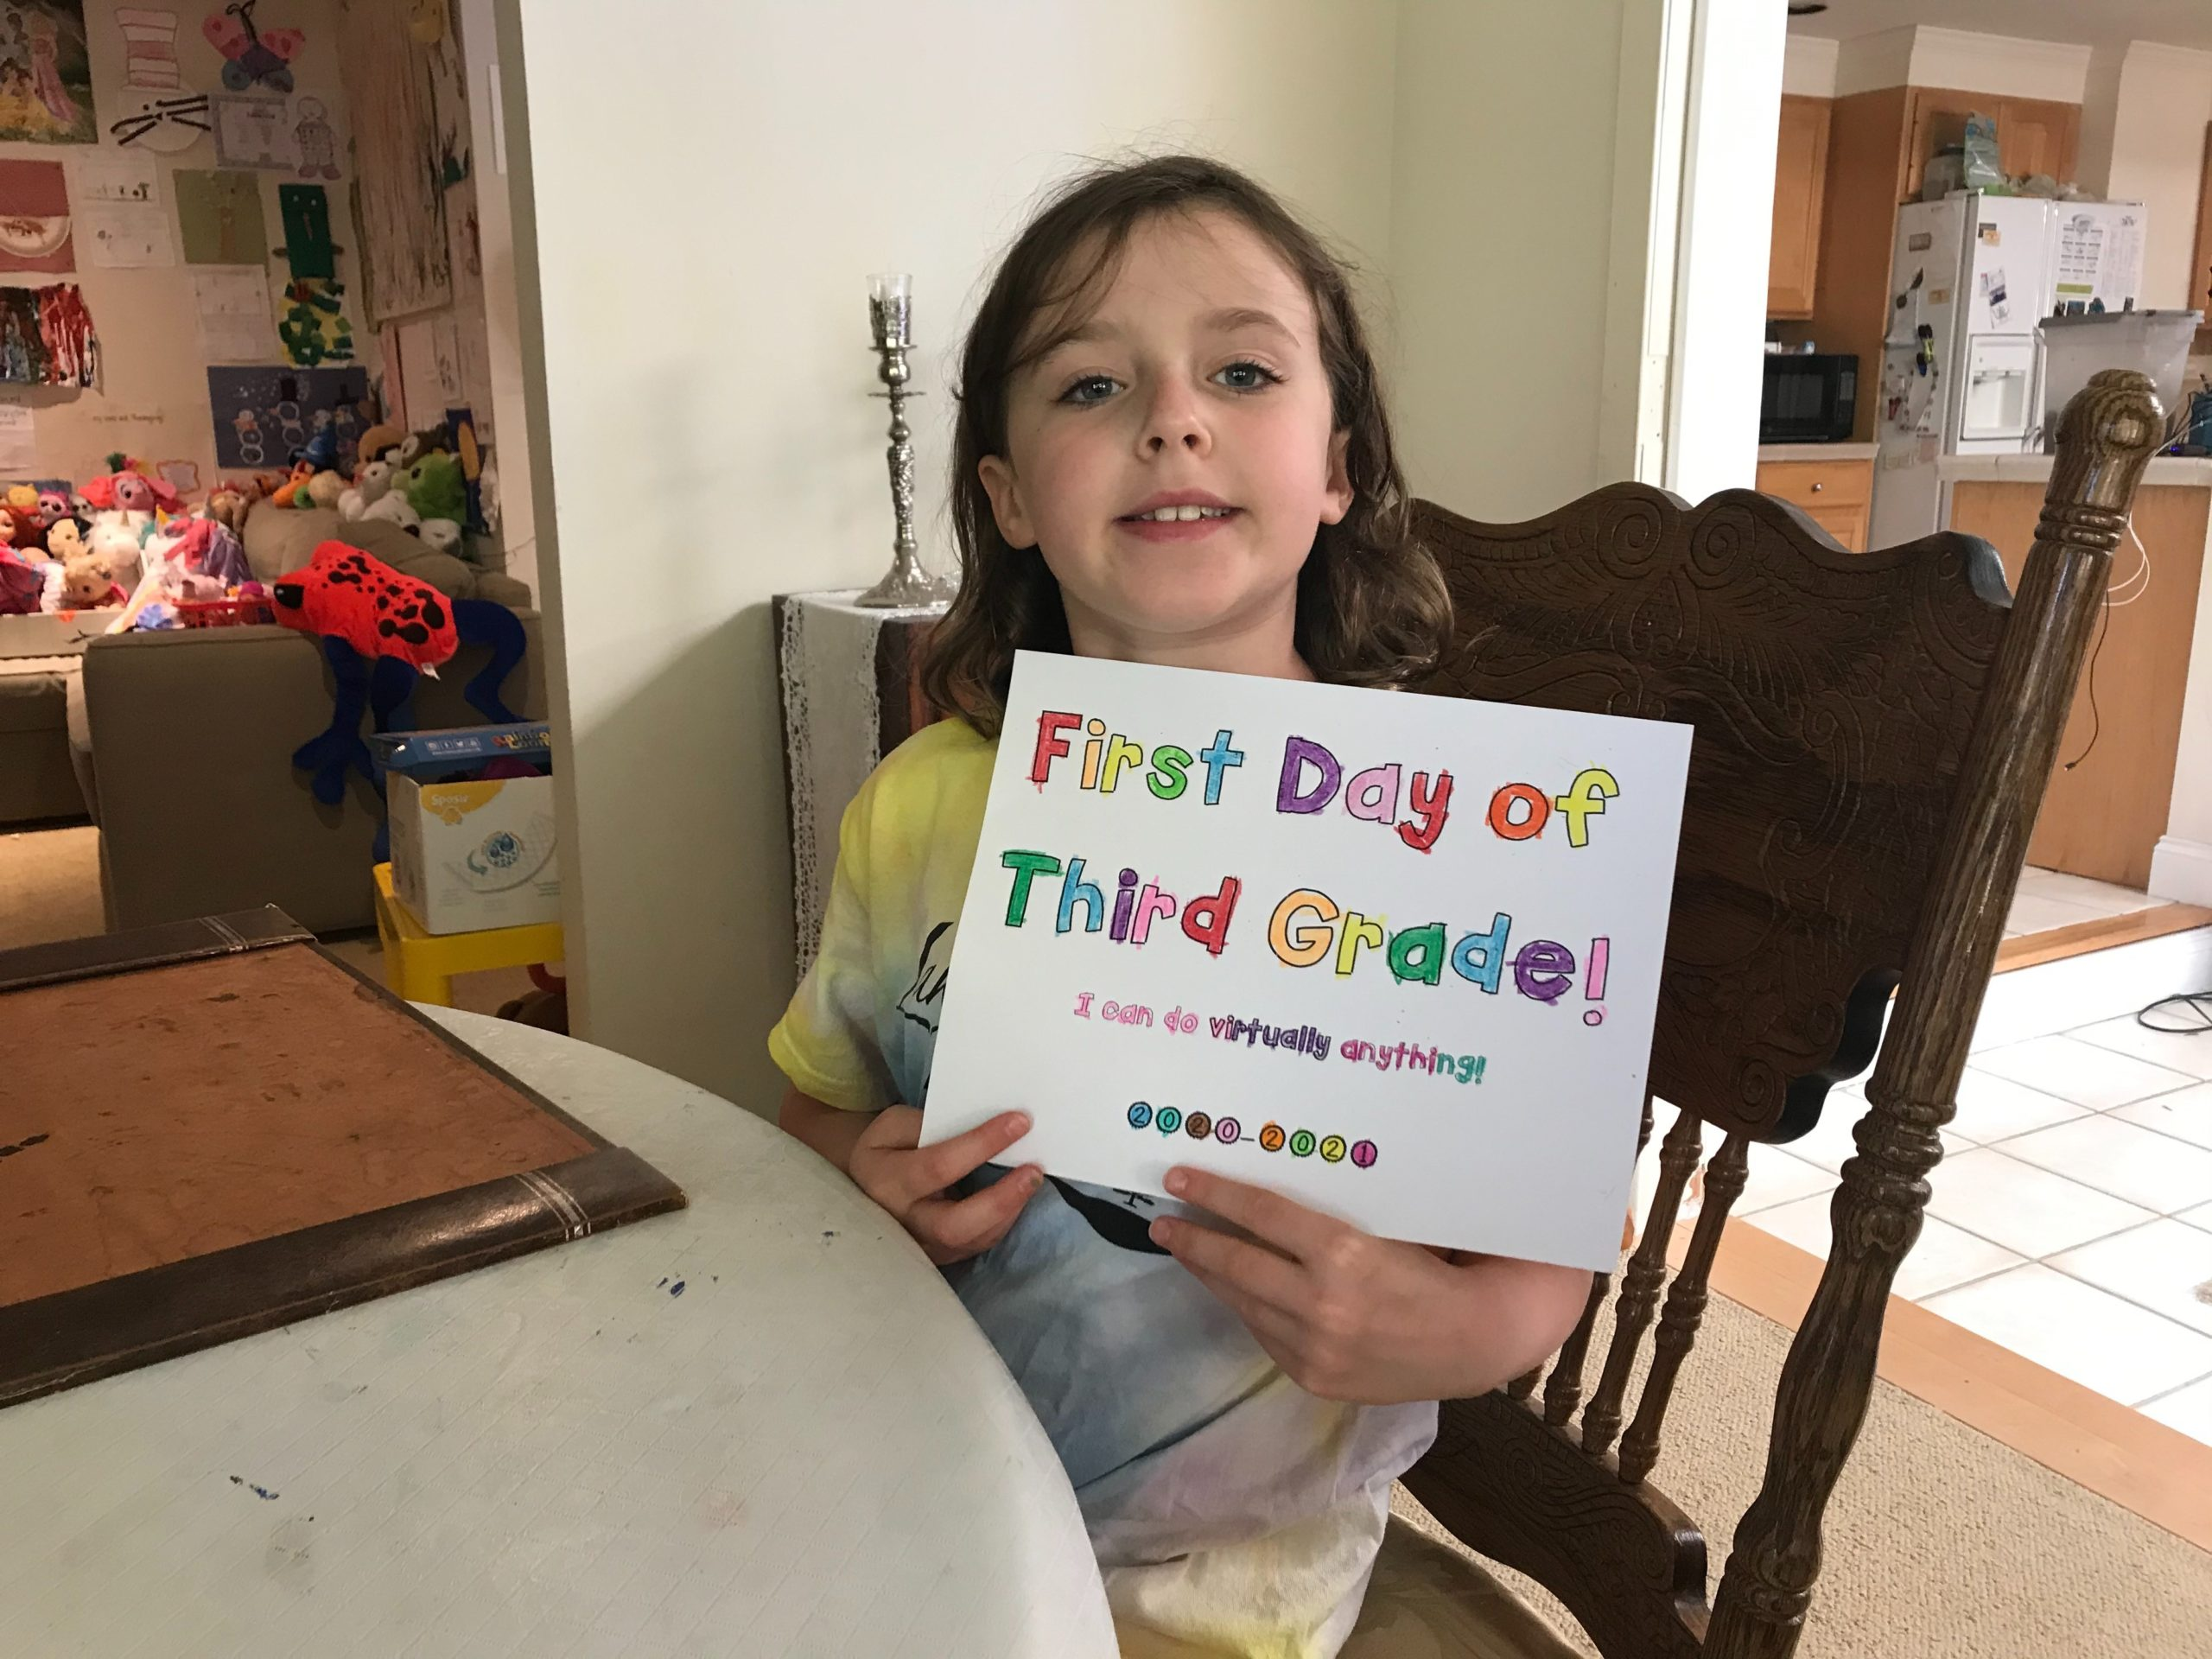 a student smiling and holding a sign that says first day of third grade